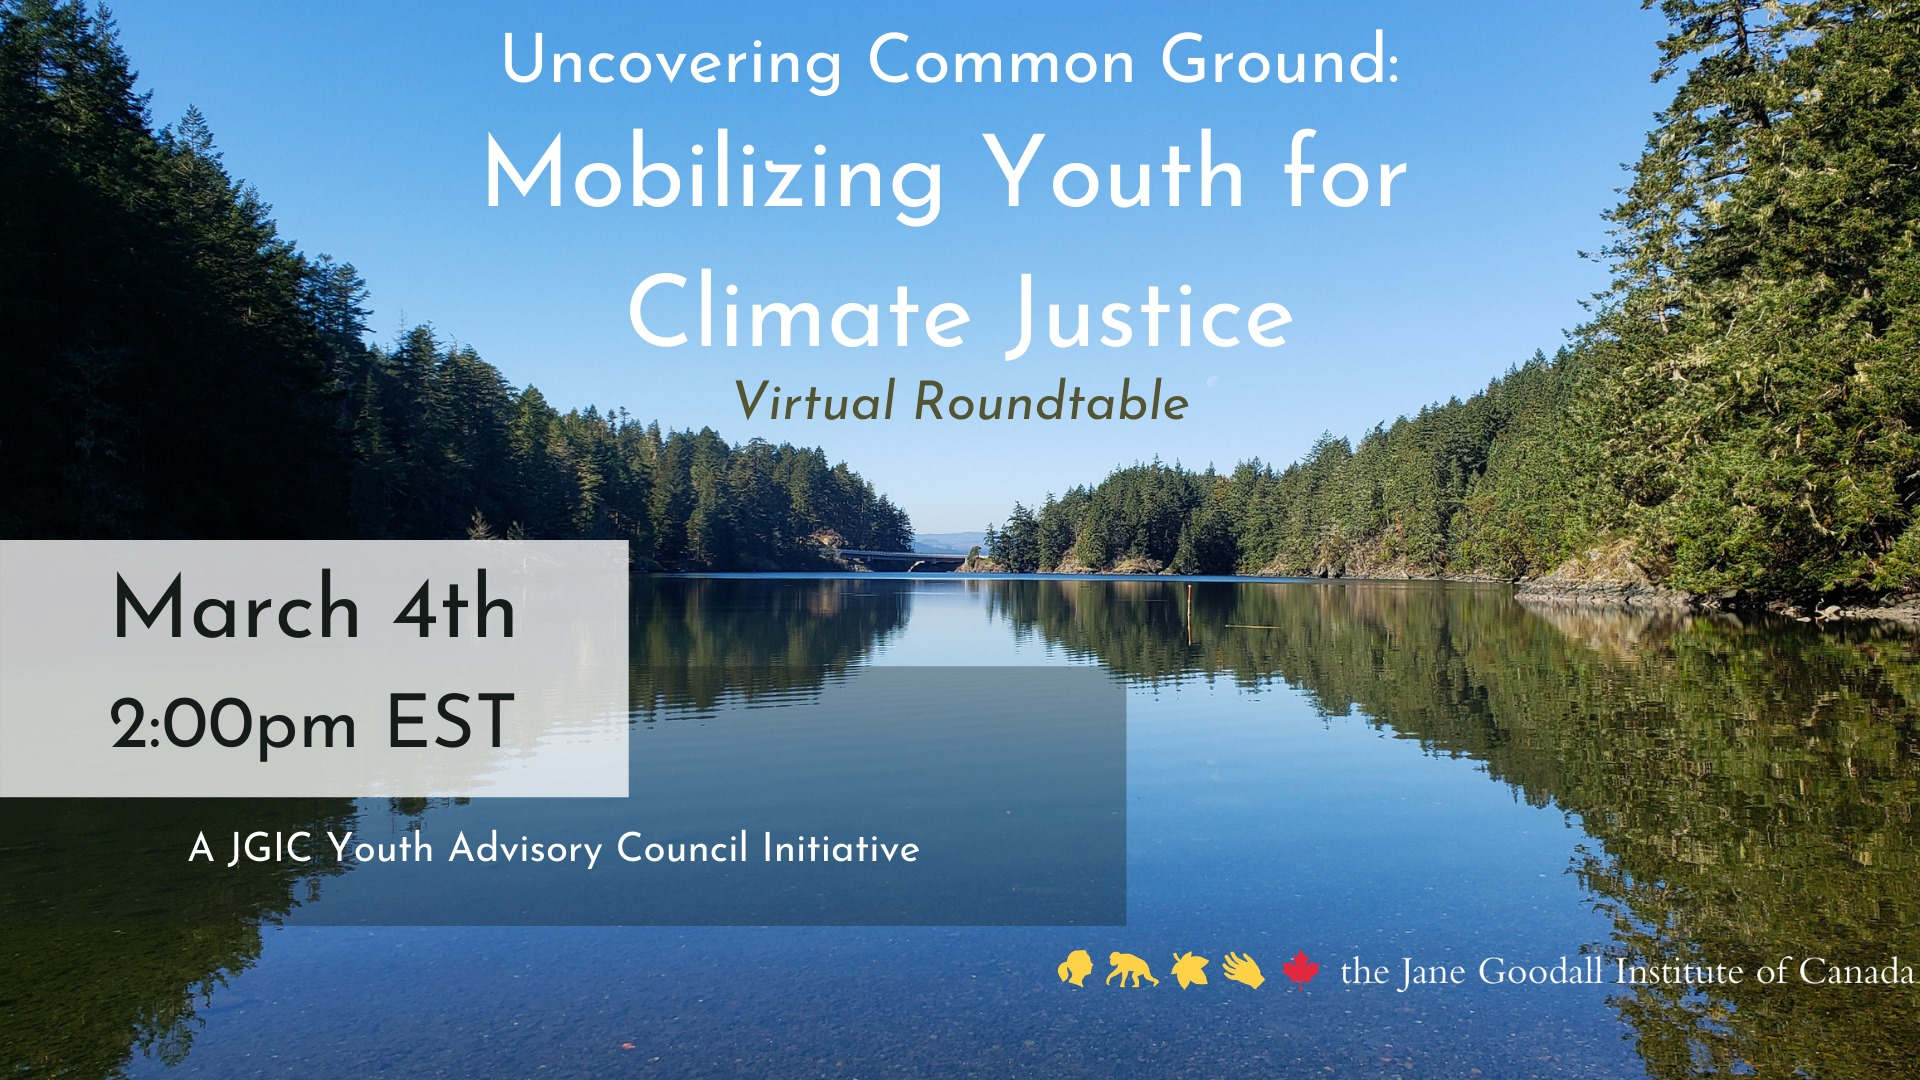 Mobilizing Youth Roundtable Poster